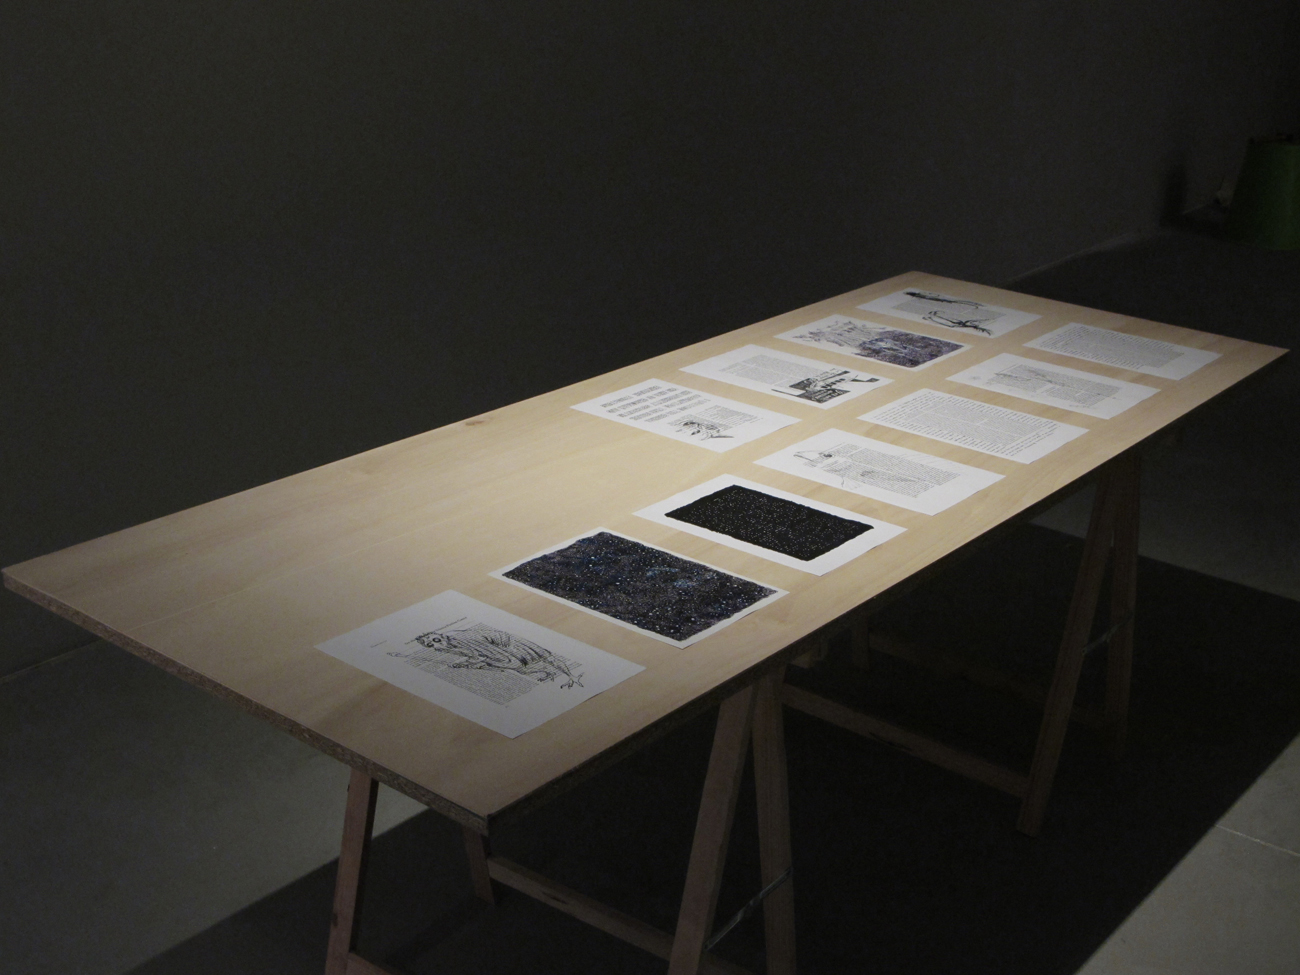 Installation view with drawings laid out on table